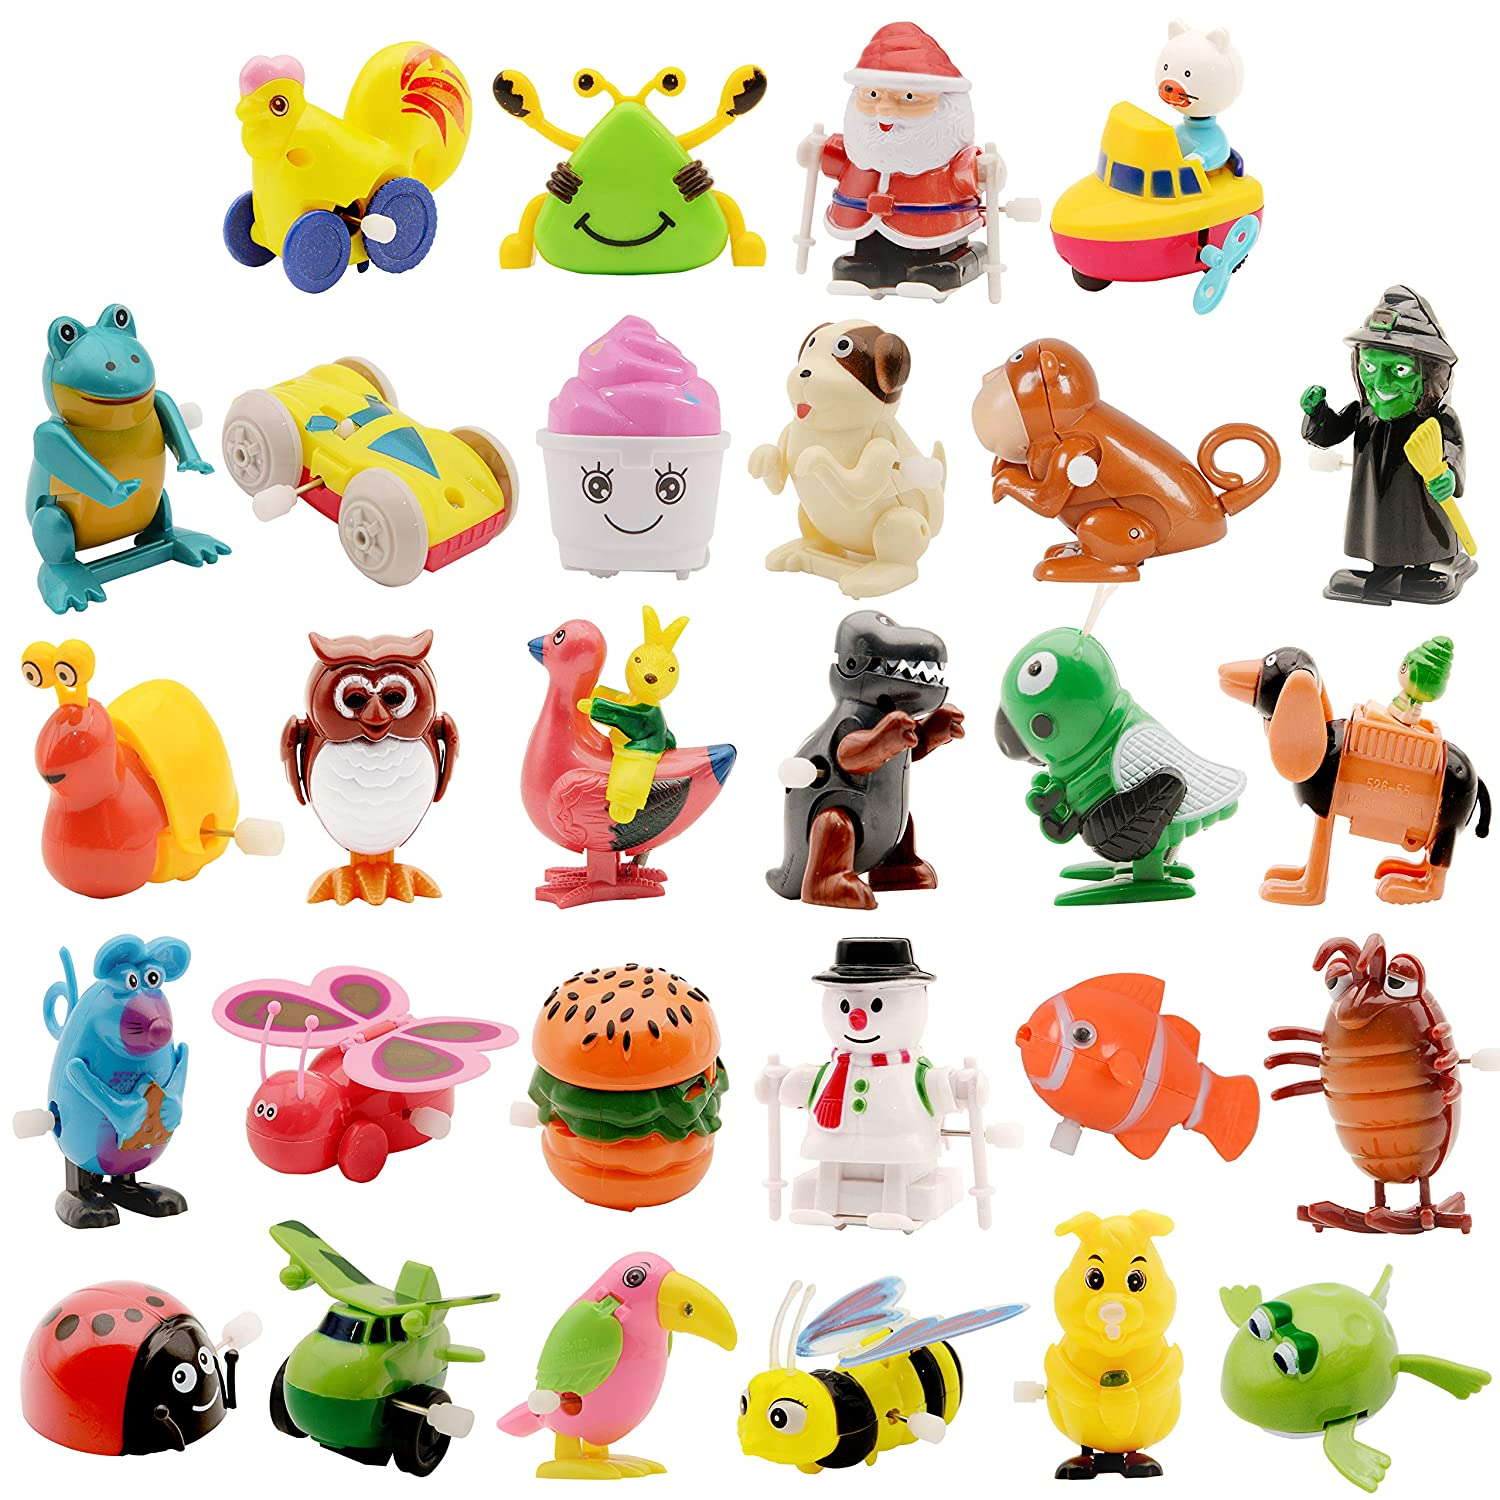 FREE SHIPPING!! Toy Wind-Up Key For Windup Toys